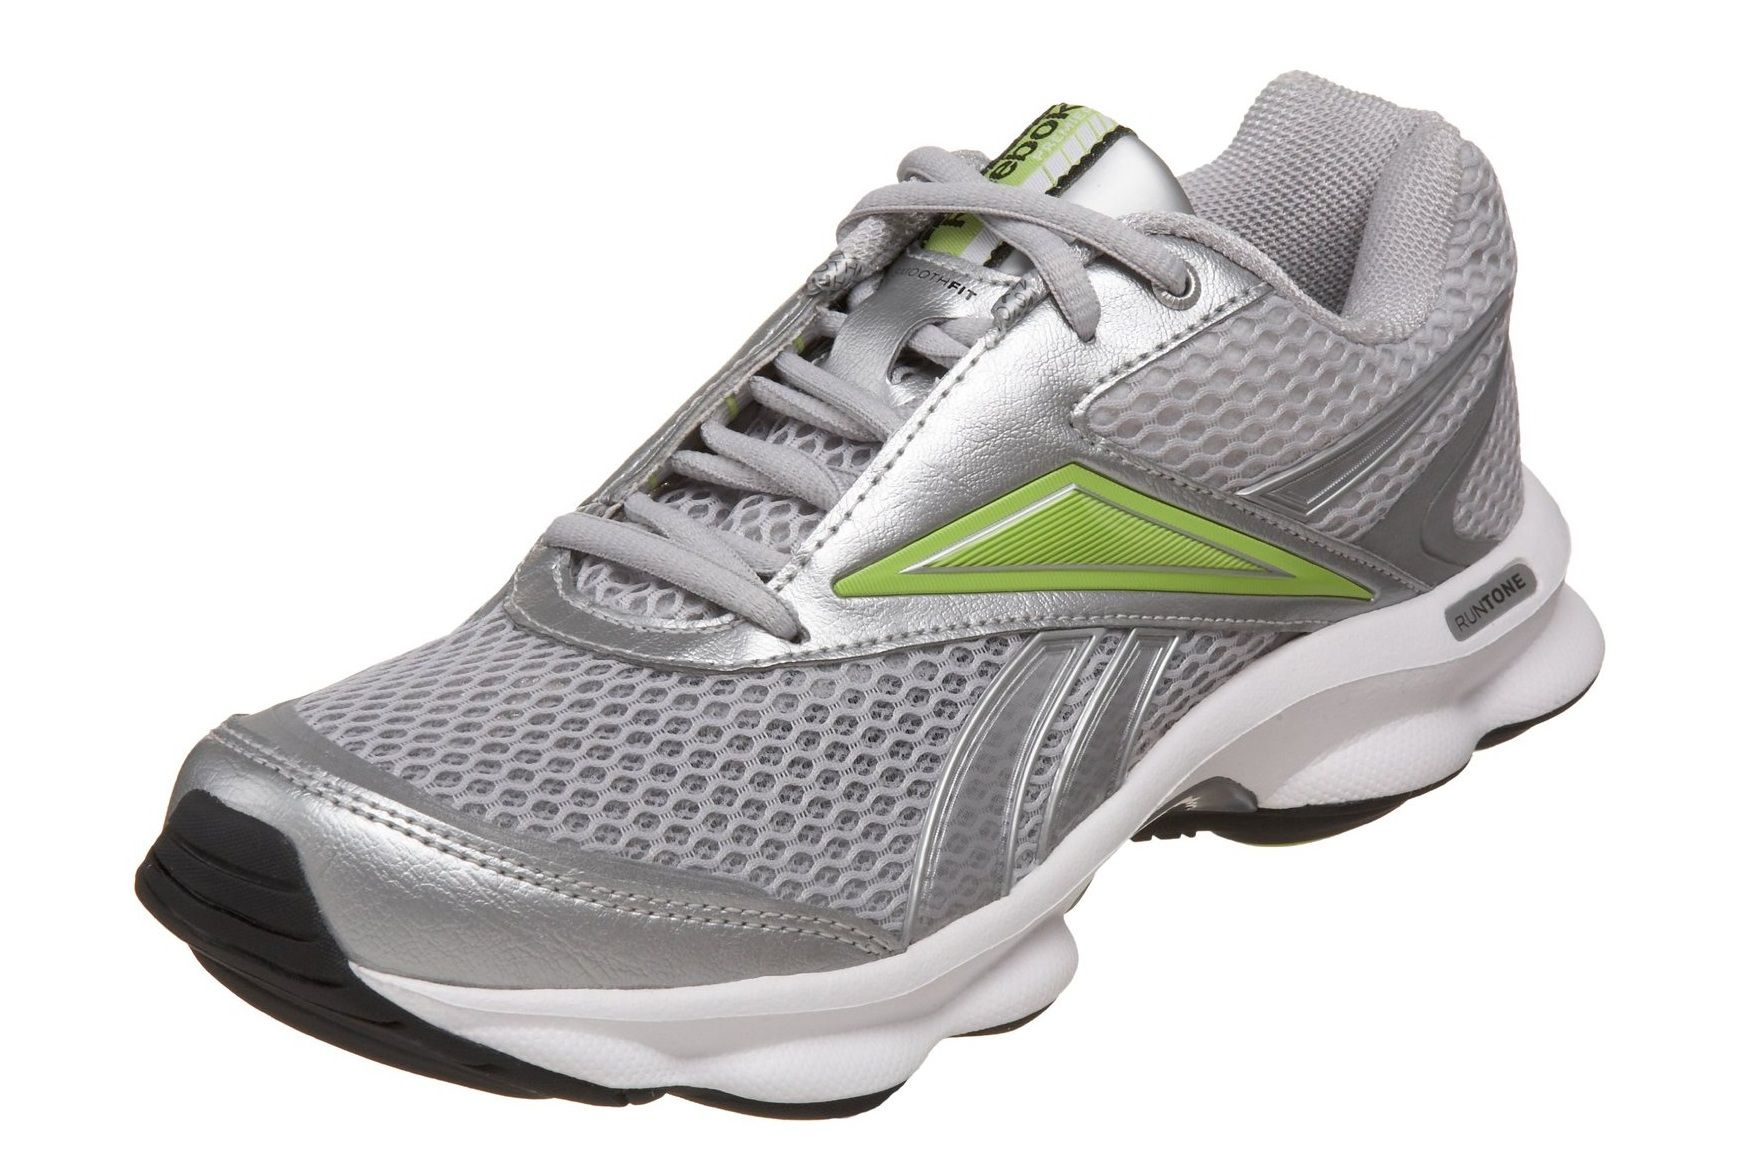 Reebok RunTone Toning Shoes - Review